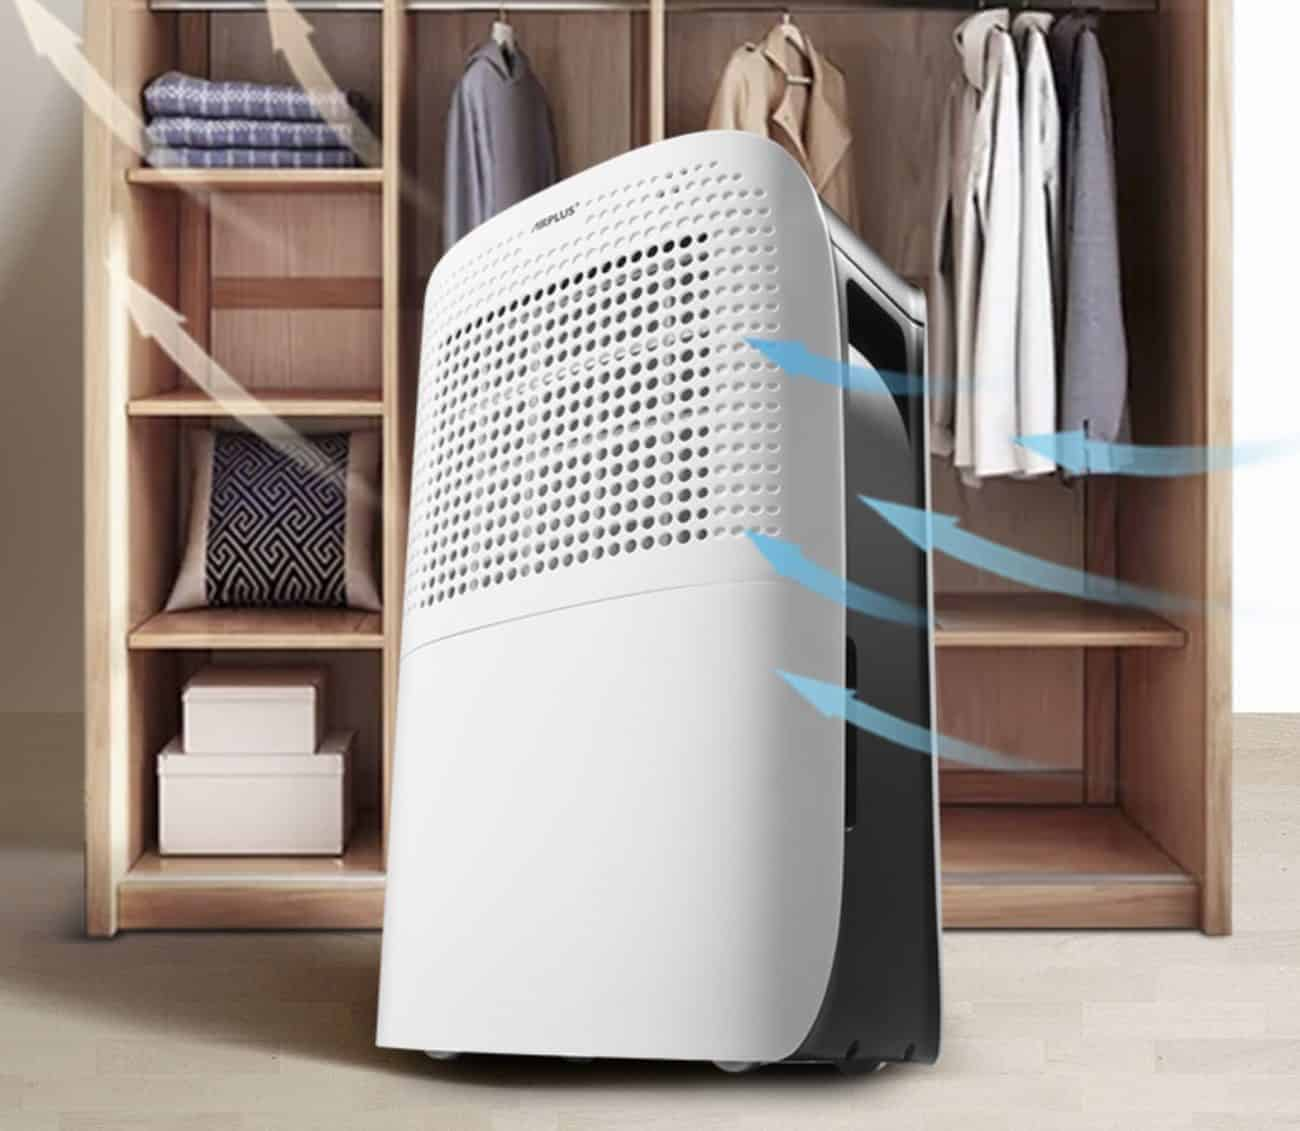 How to Choose the Best Dehumidifier